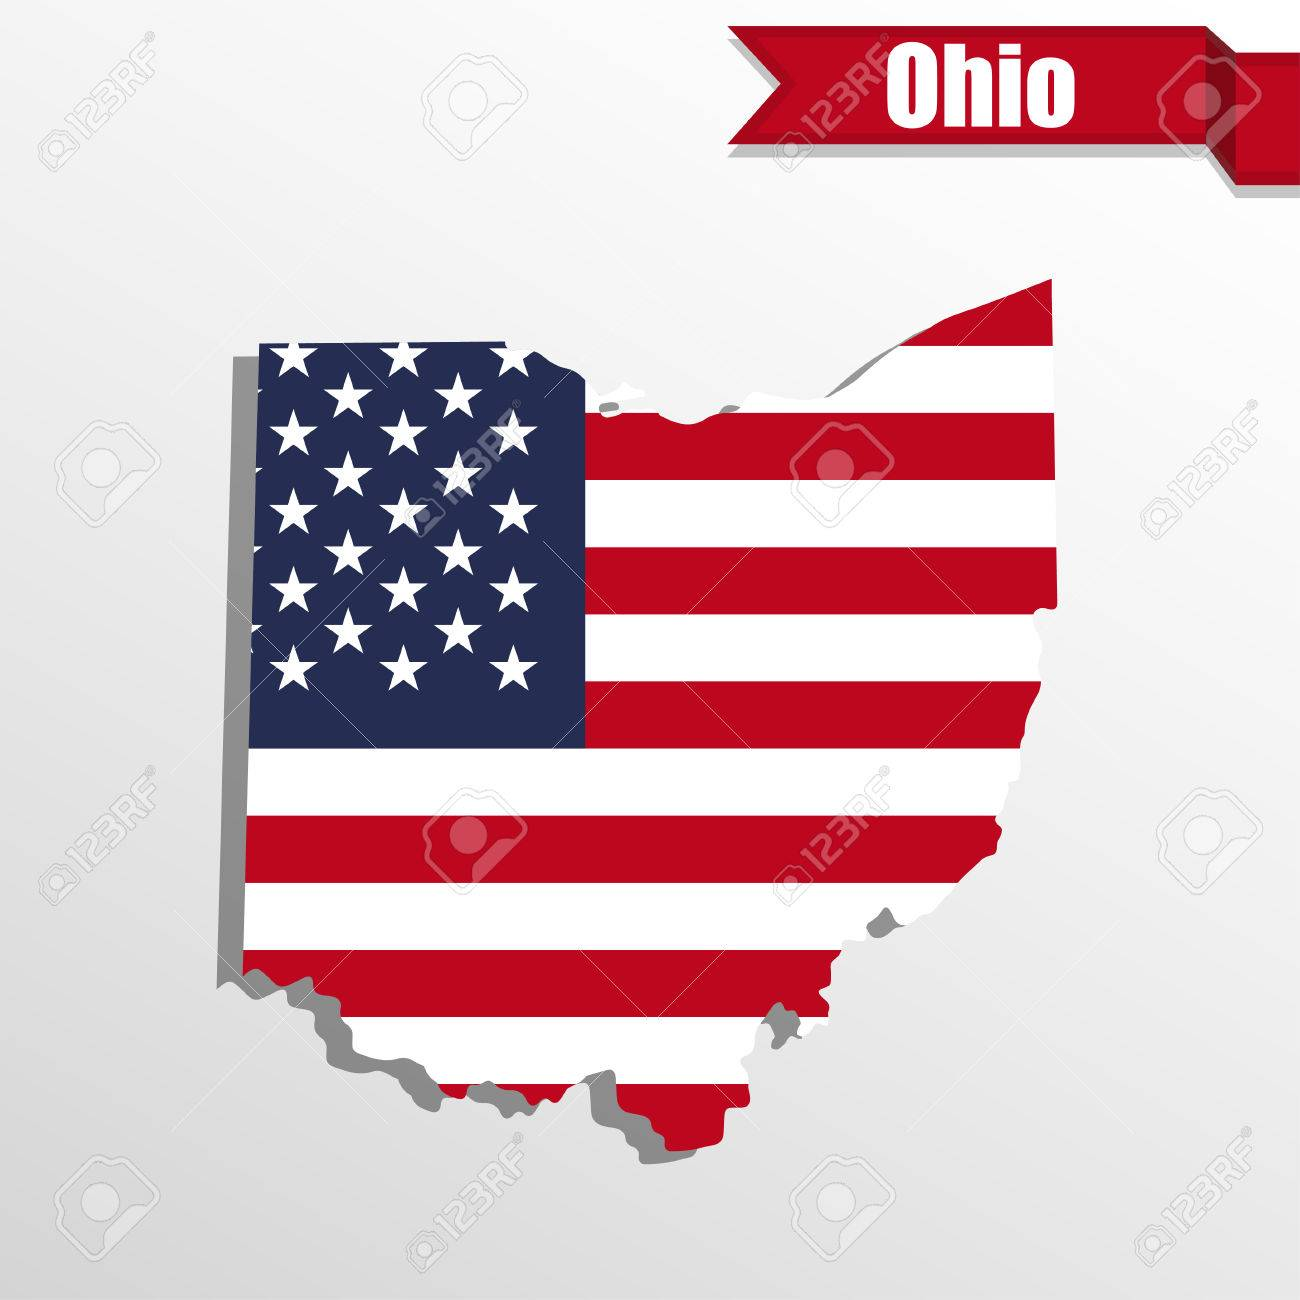 Ohio State Map With Us Flag Inside And Ribbon Stock Vector 59467559